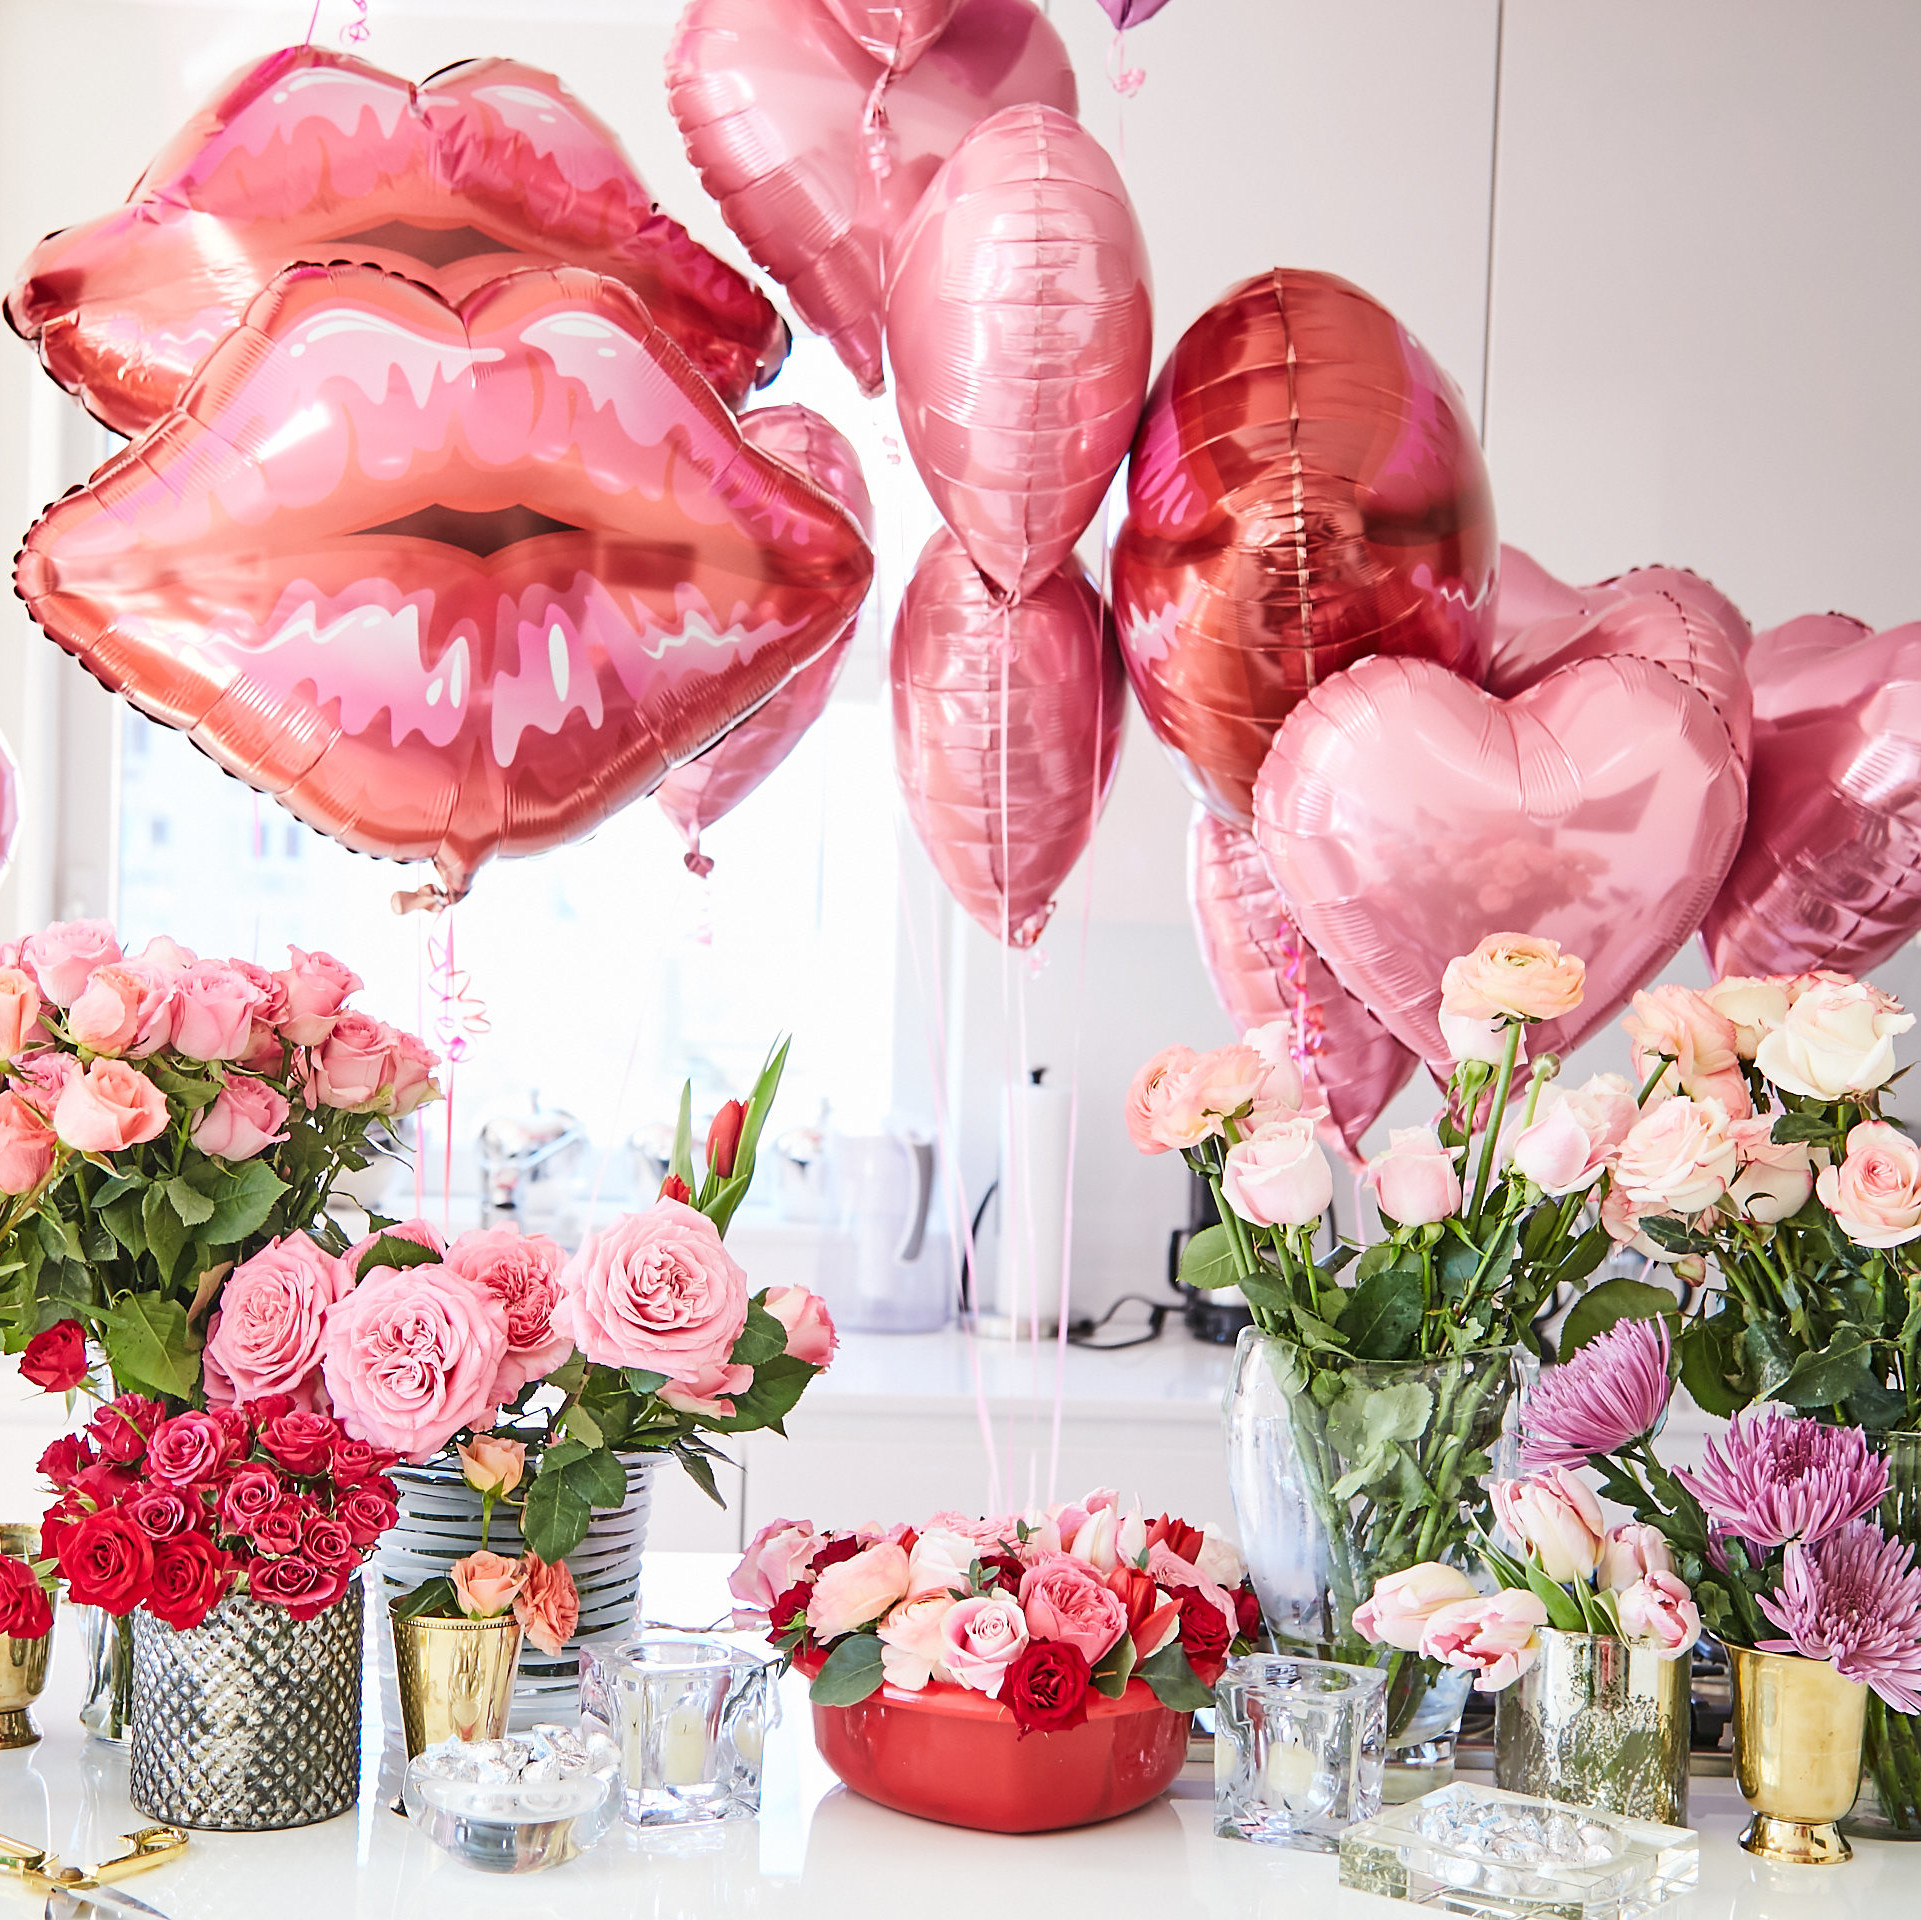 Valentine's Day balloons and flowers on display